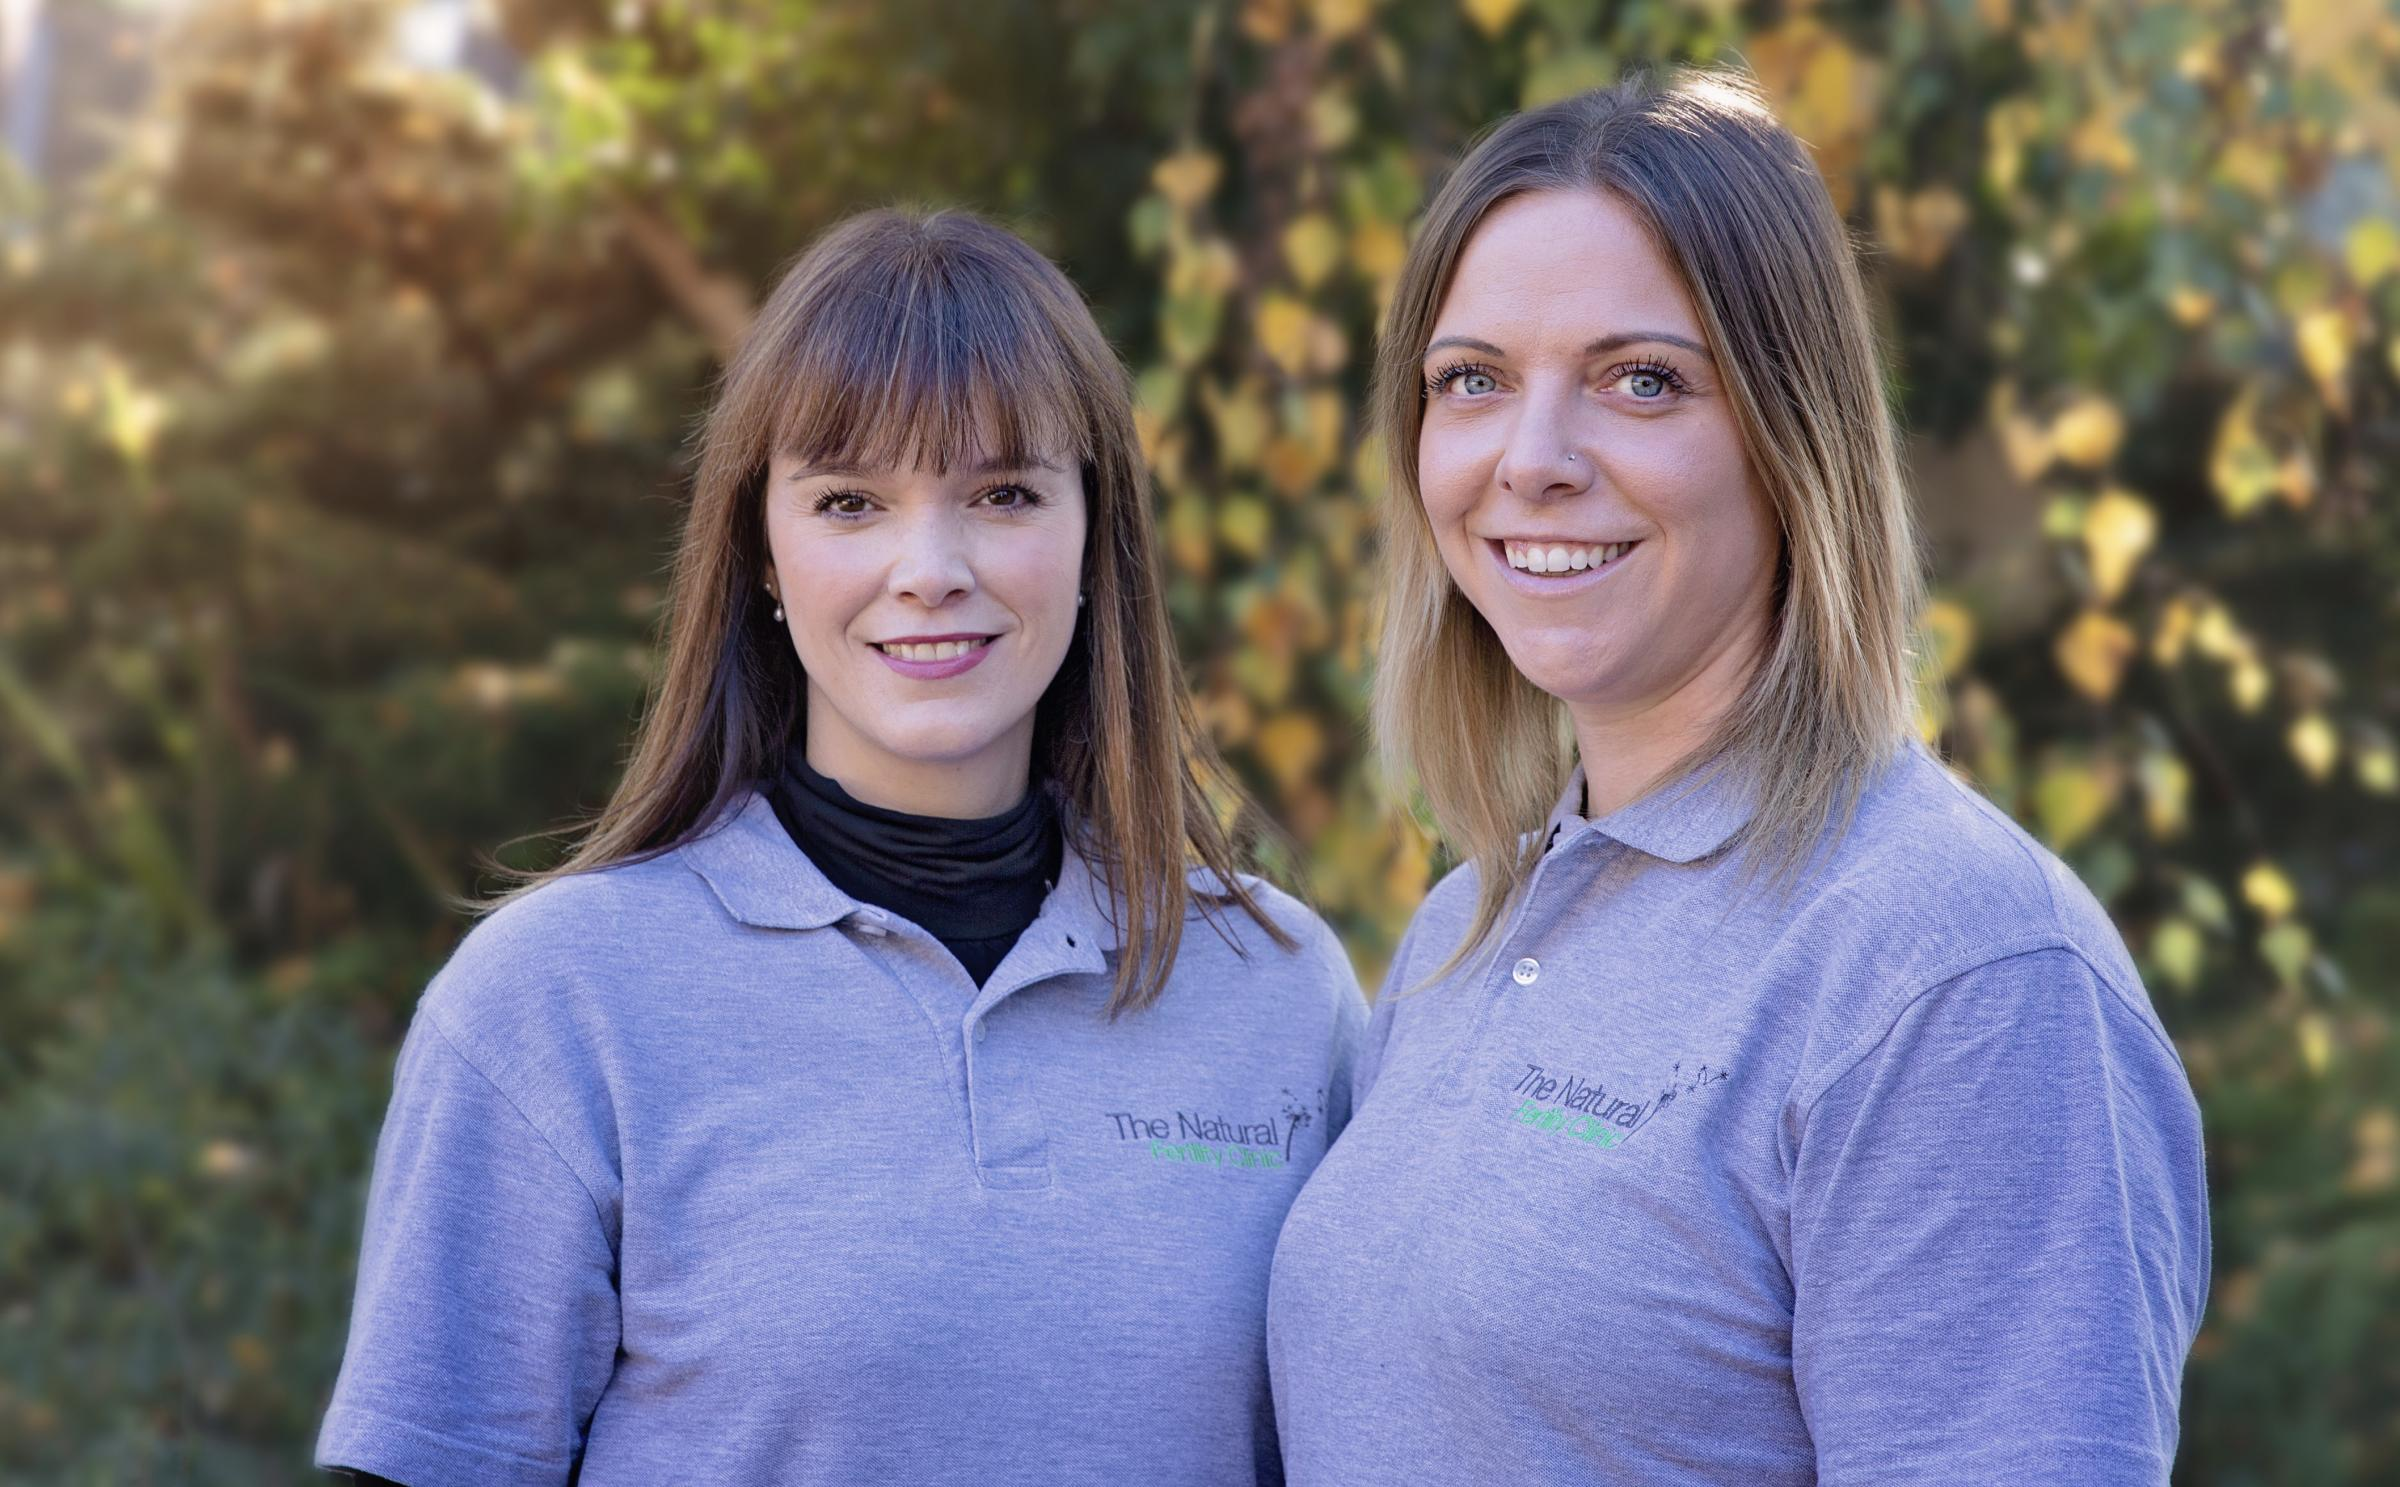 The Fertility Clinic founders Verity Paz (left) and Katy Flello (right)